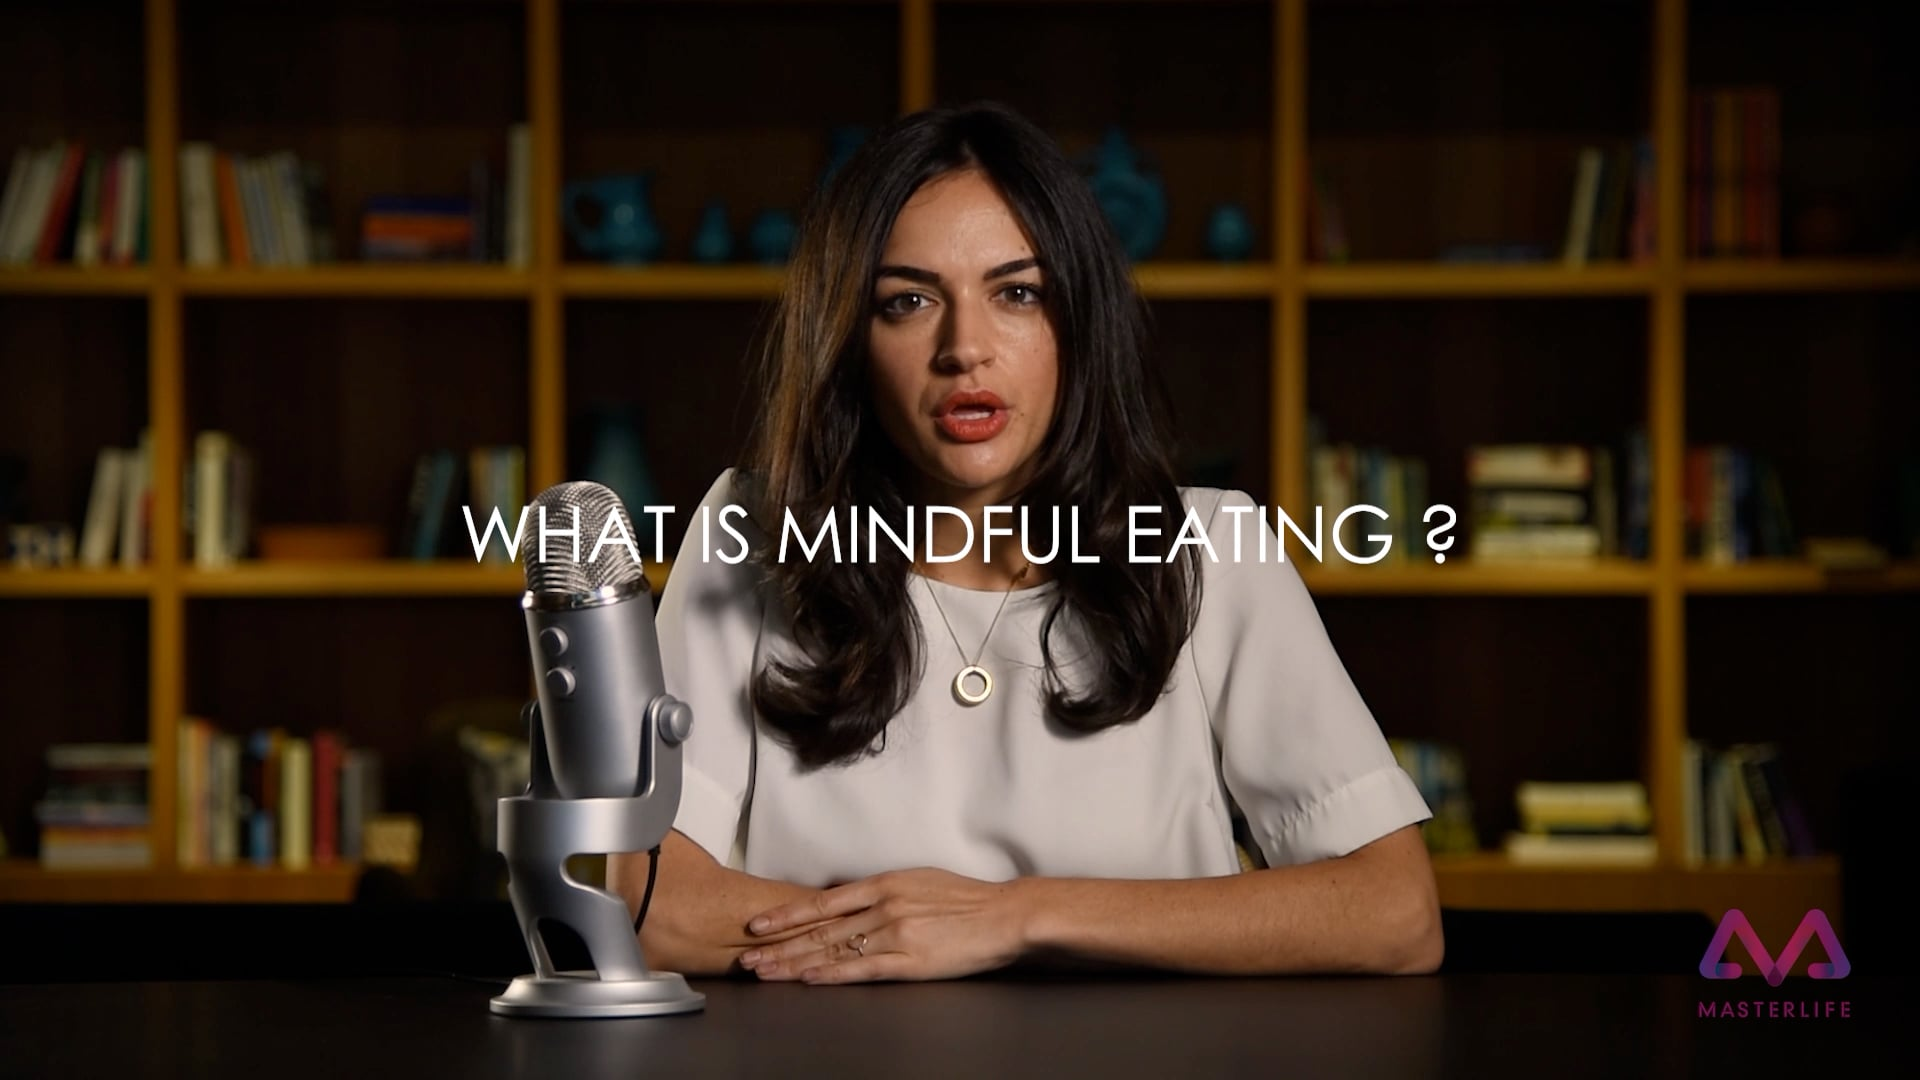 Preview - Mindful Eating by Sarah Nicole Edwards on Masterlife app.